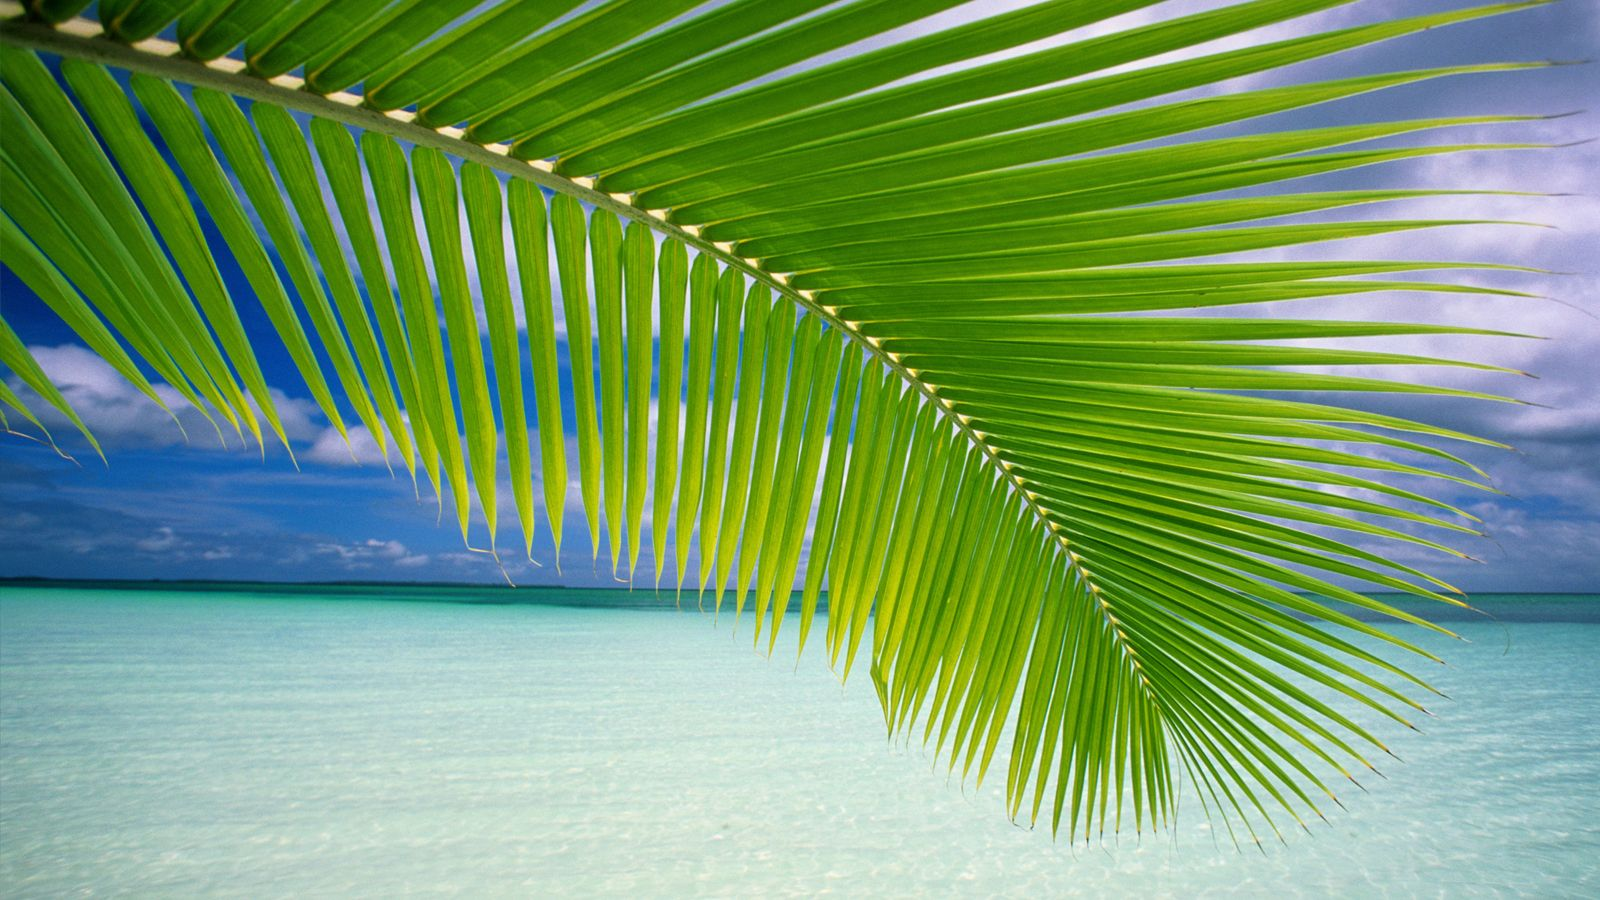 wallpaper Beach Wallpaper Windows 7 1600x900